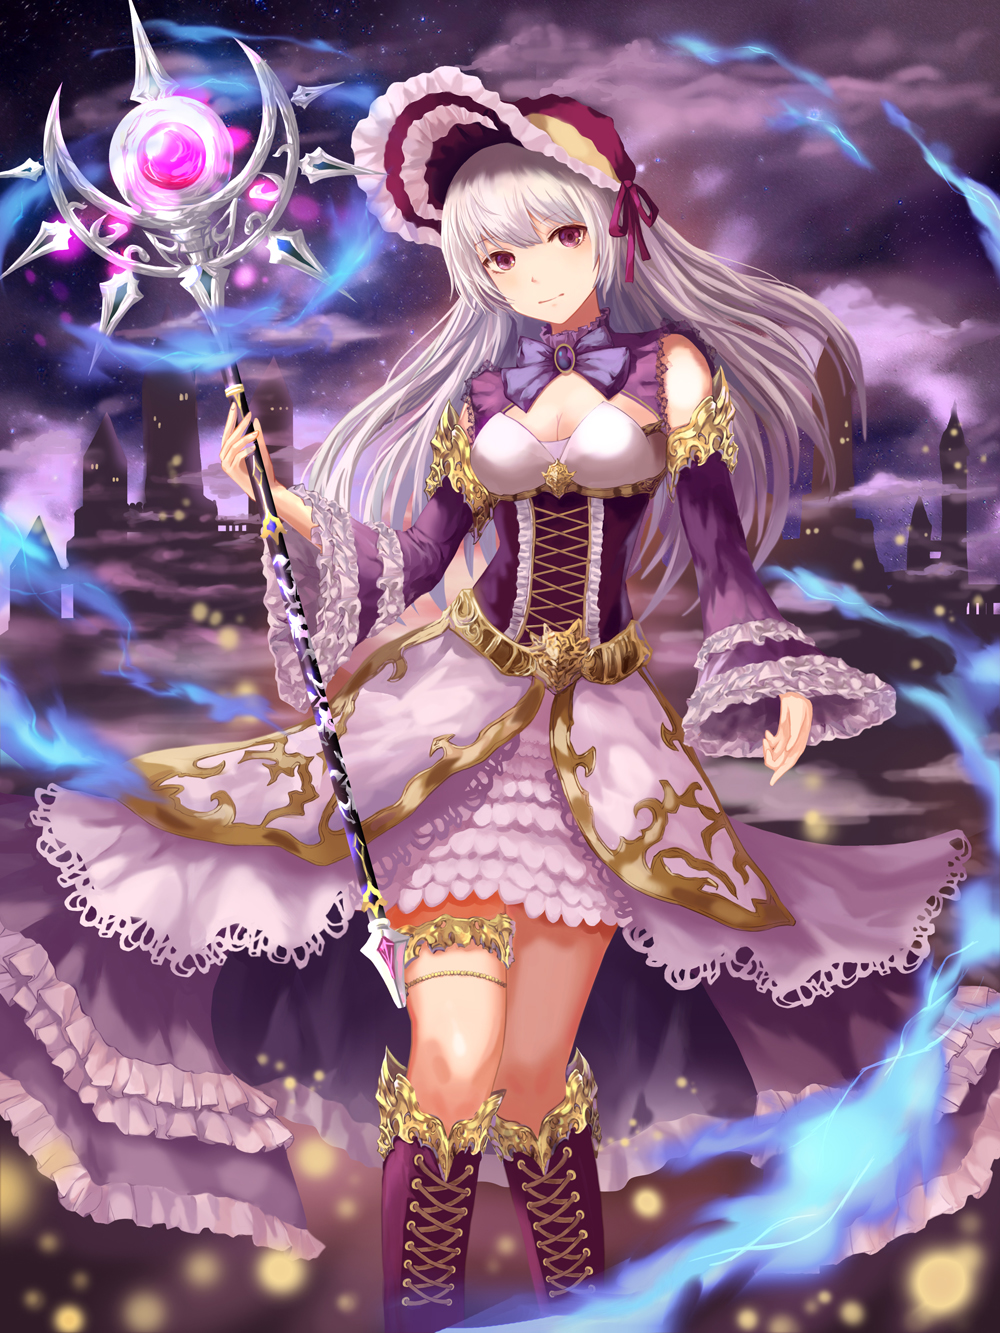 1girl bonnet boots breasts castle clouds dew_(7302235) dress frilled_sleeves frills highres holding holding_staff knee_boots long_hair looking_at_viewer medium_breasts original outdoors purple purple_dress solo staff standing thigh_strap white_hair